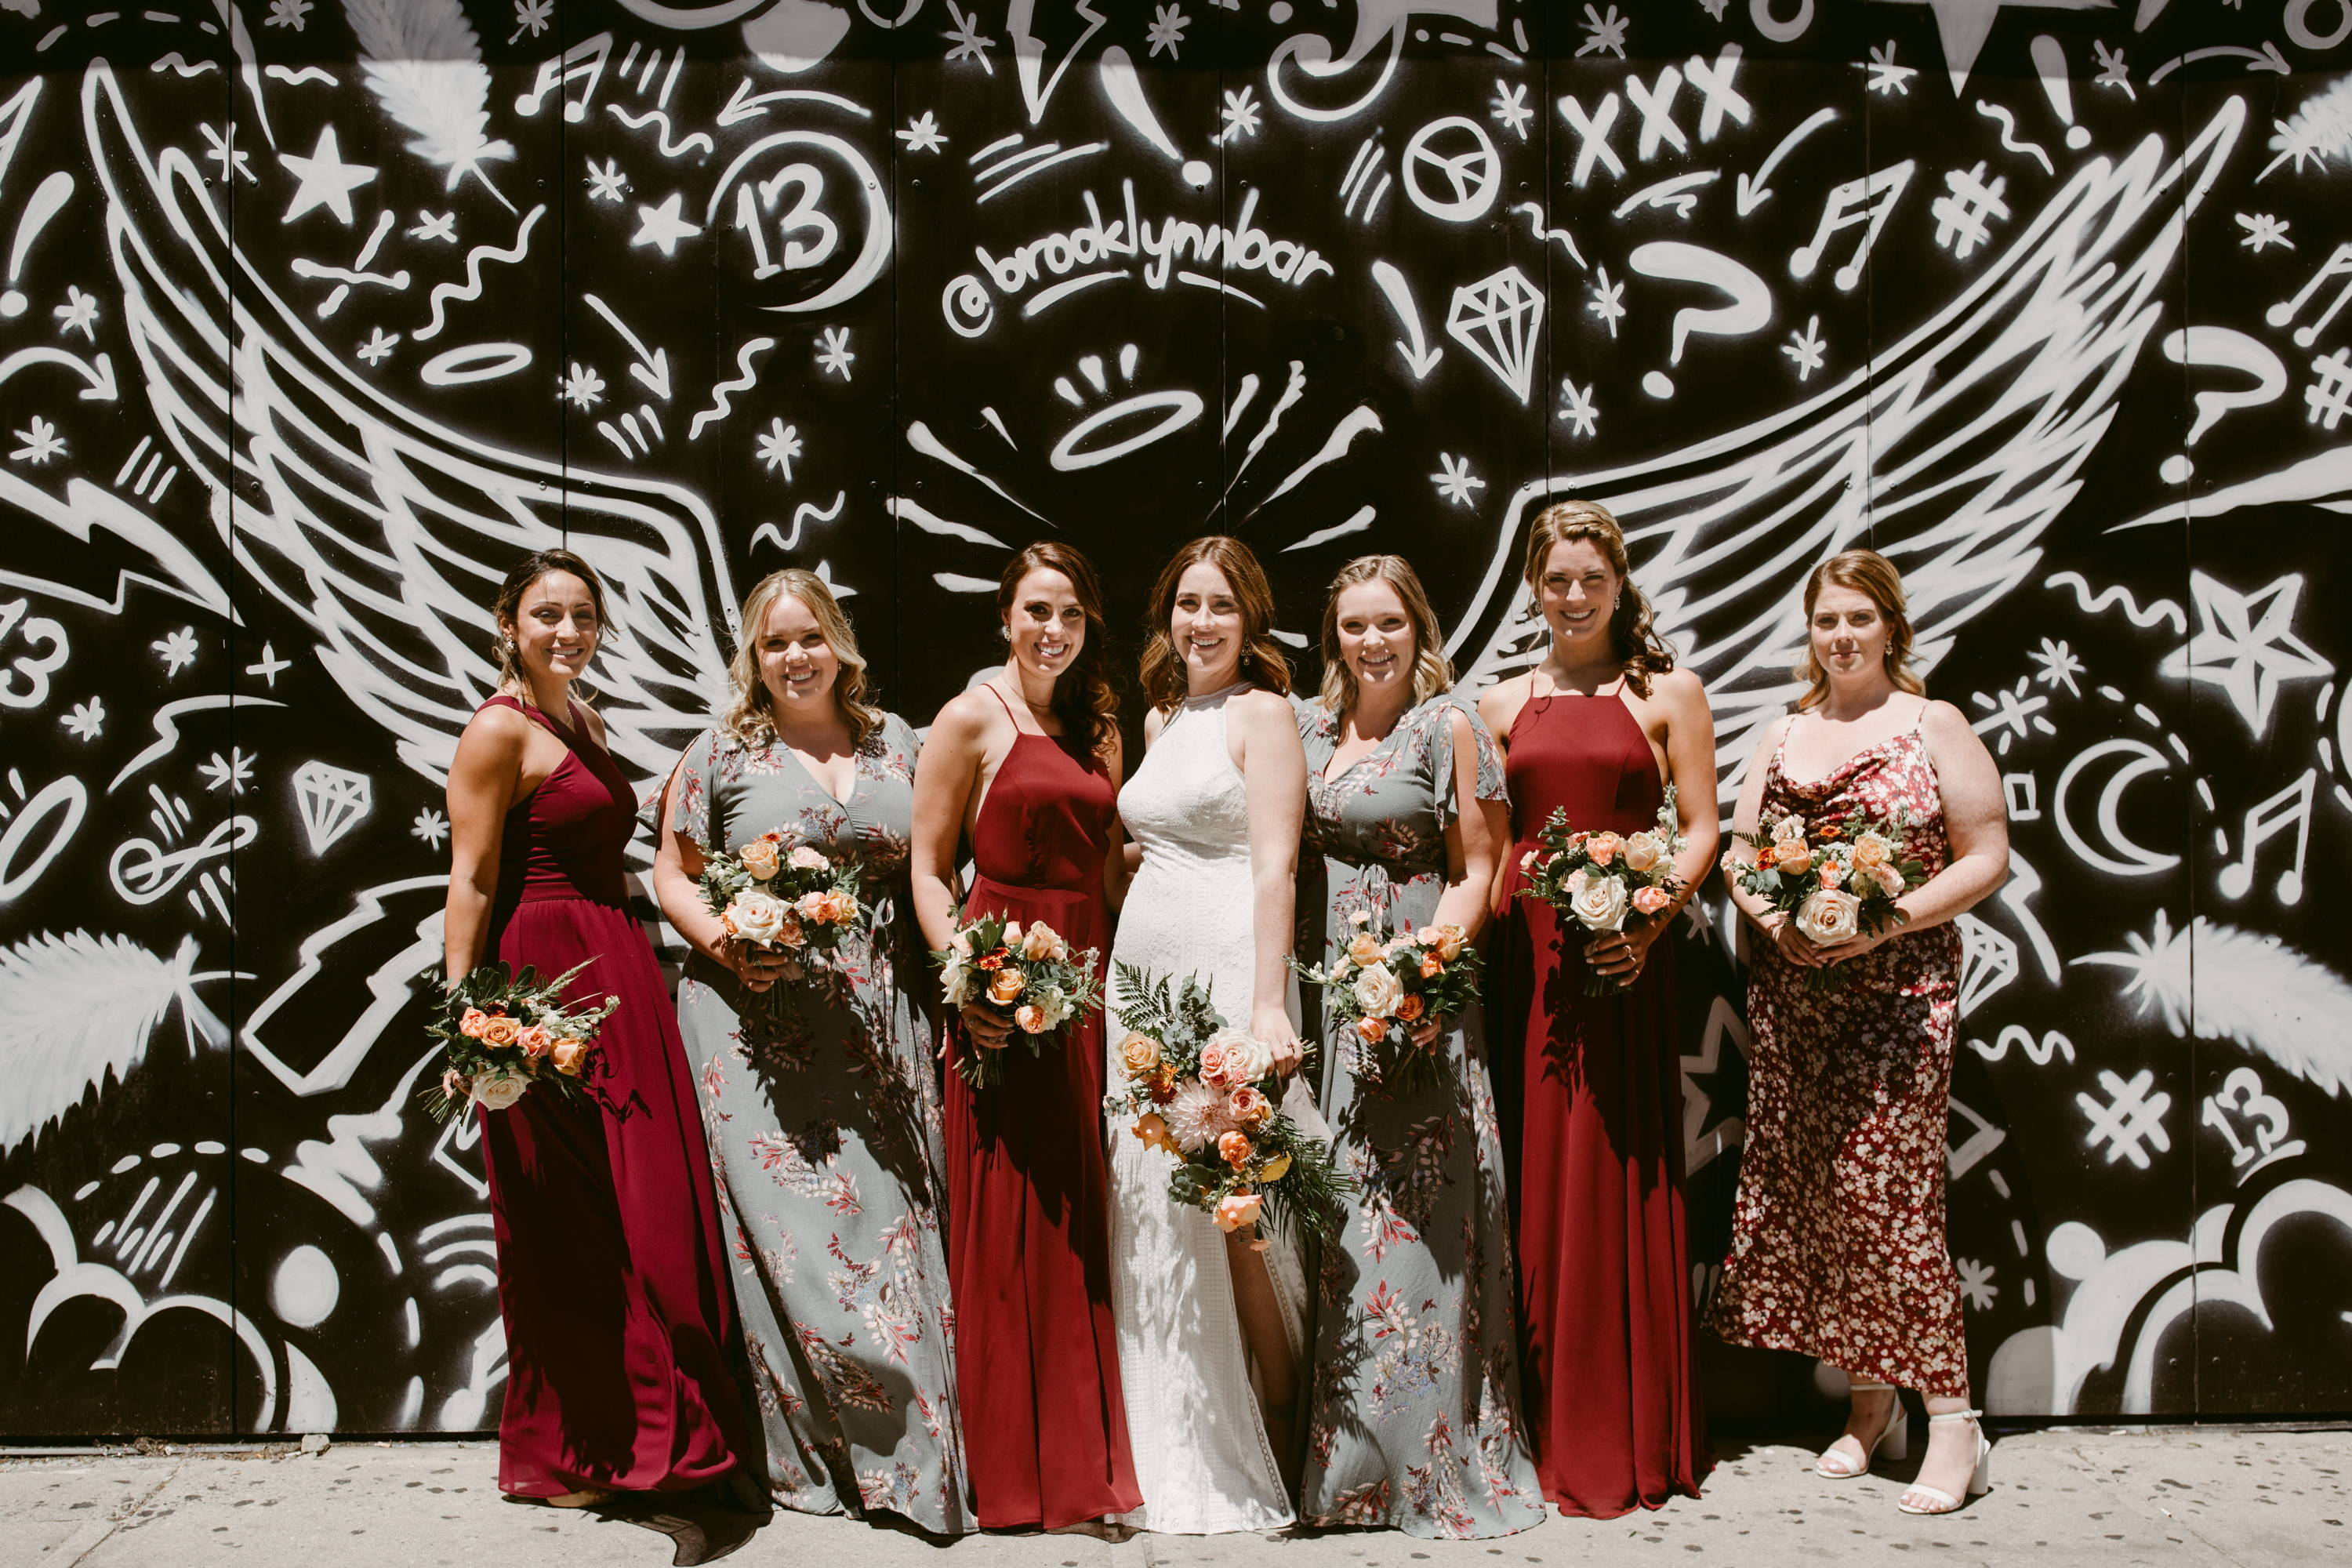 Bridal party with wedding bouquets in Toronto